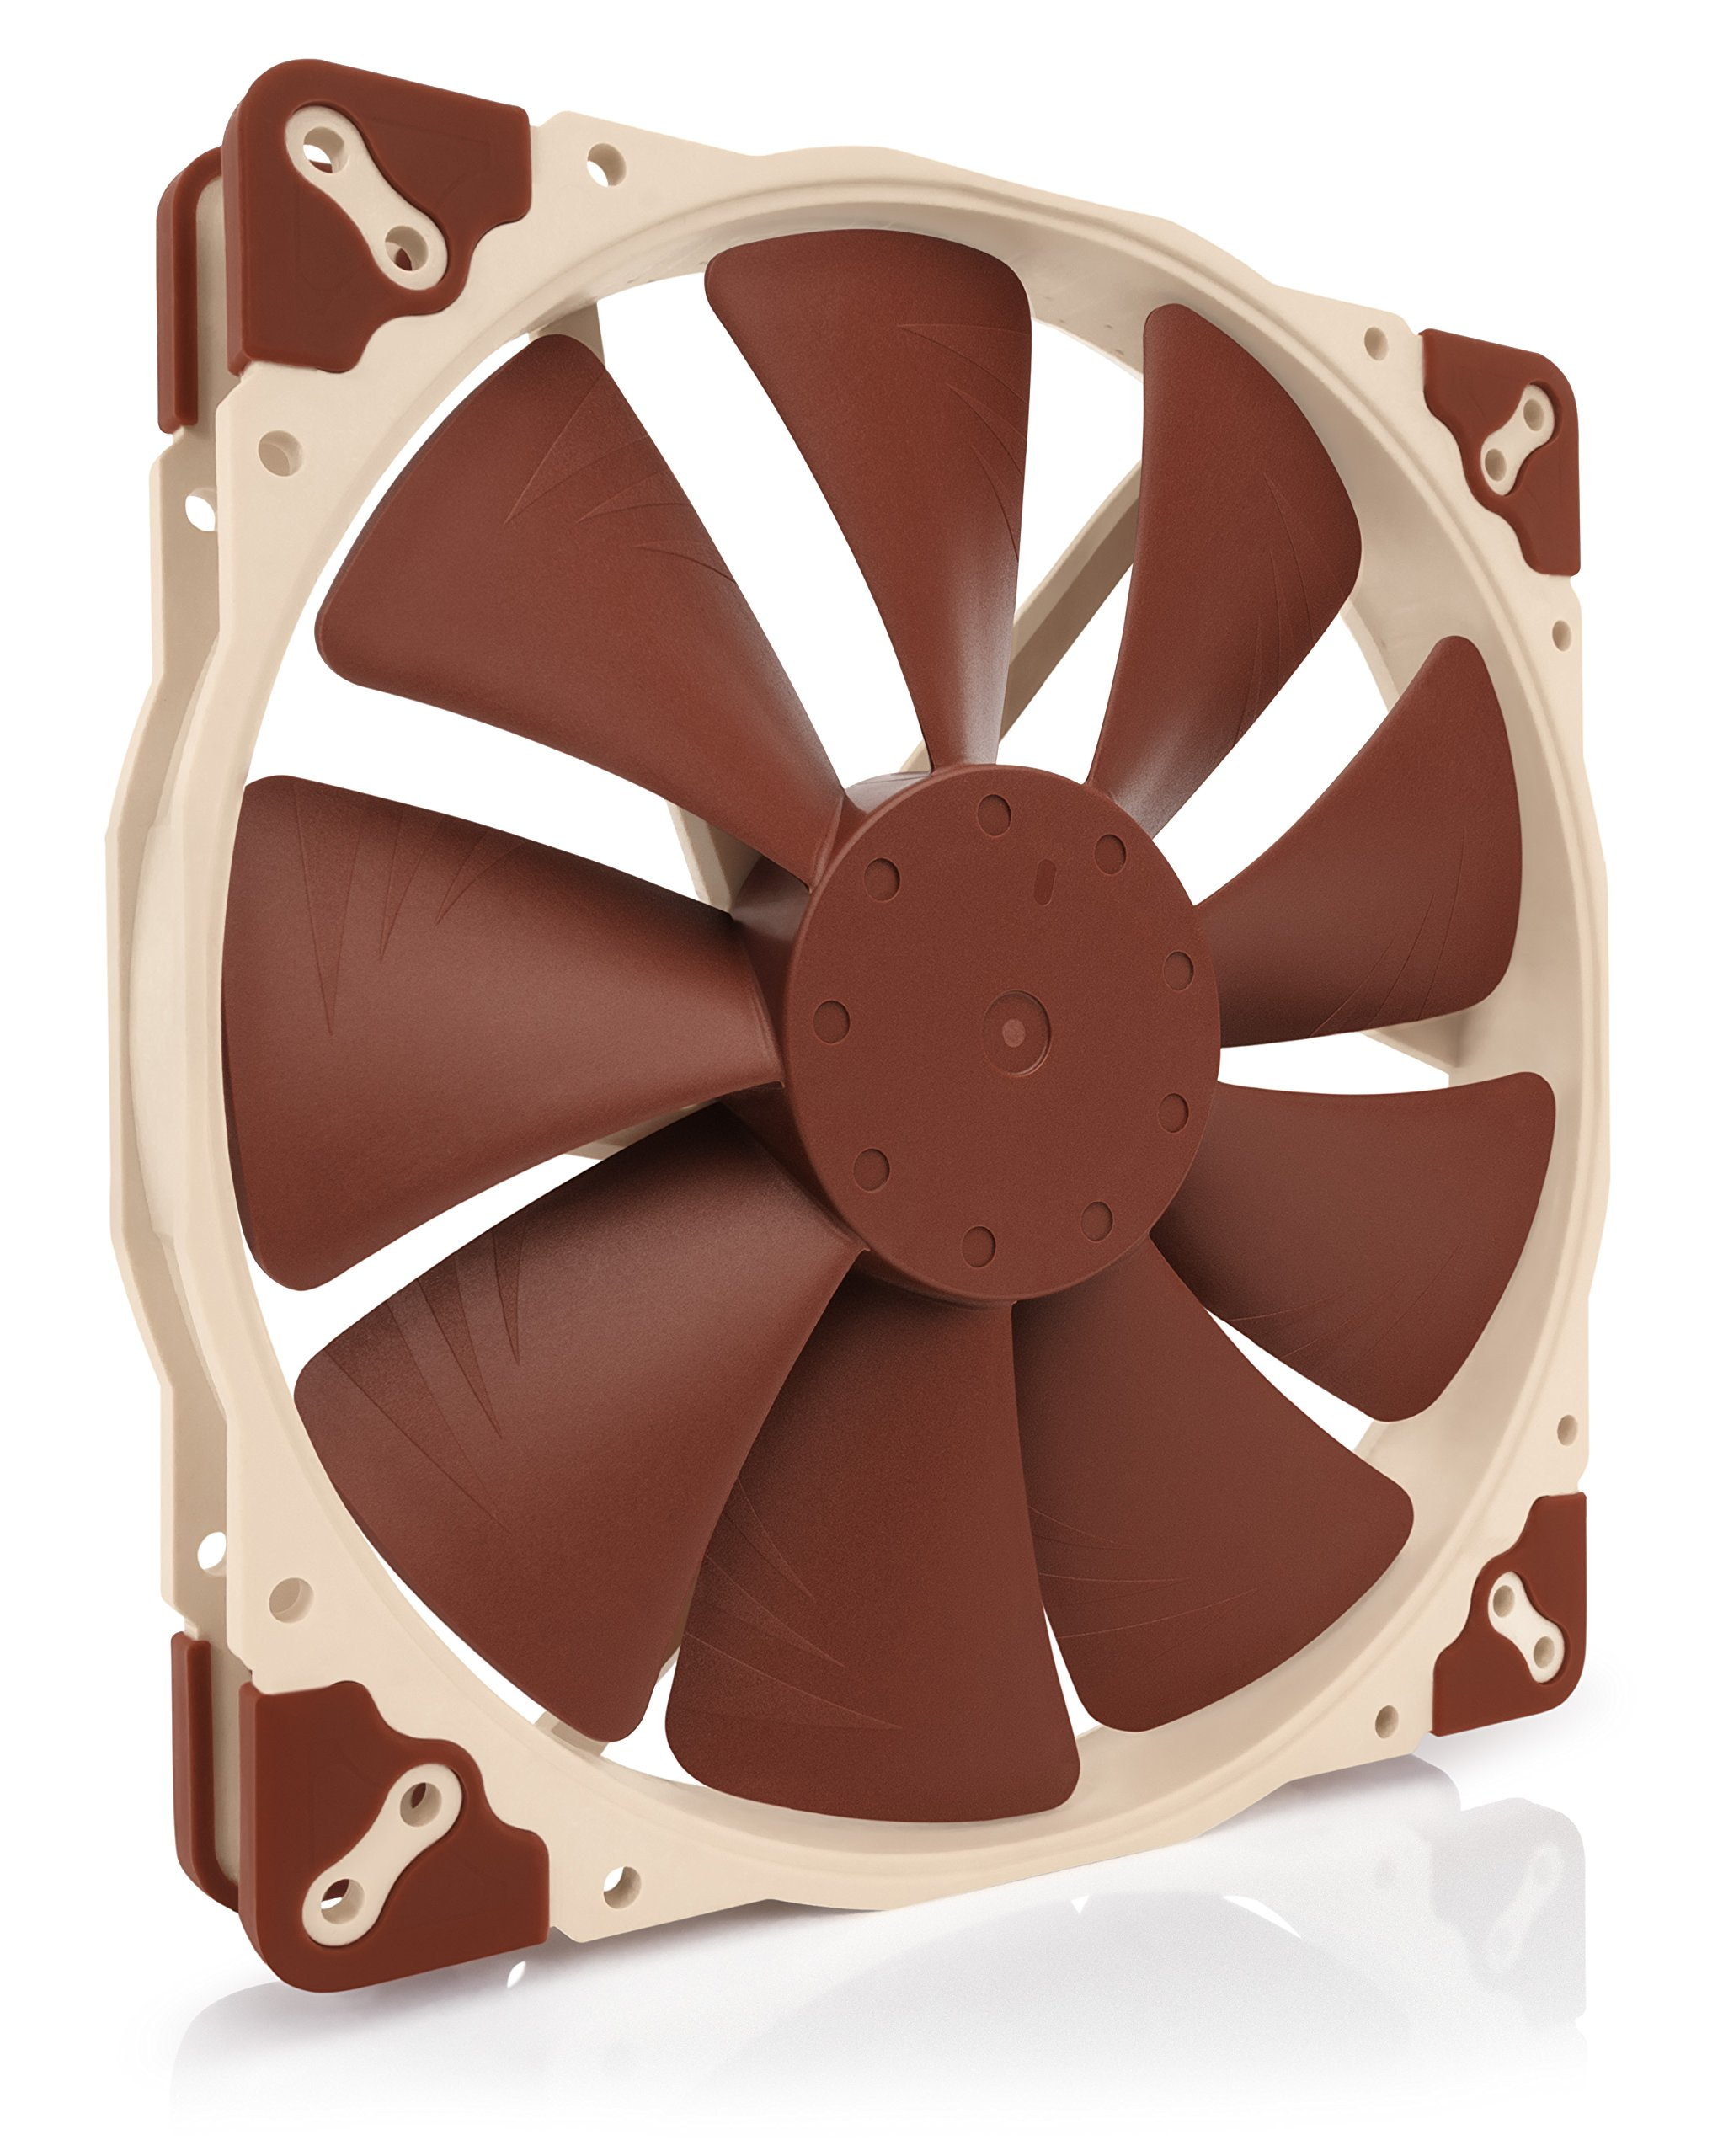 Noctua NF-A20 PWM, Premium Quiet Fan, 4-Pin (200x30mm, Brown) by NOCTUA